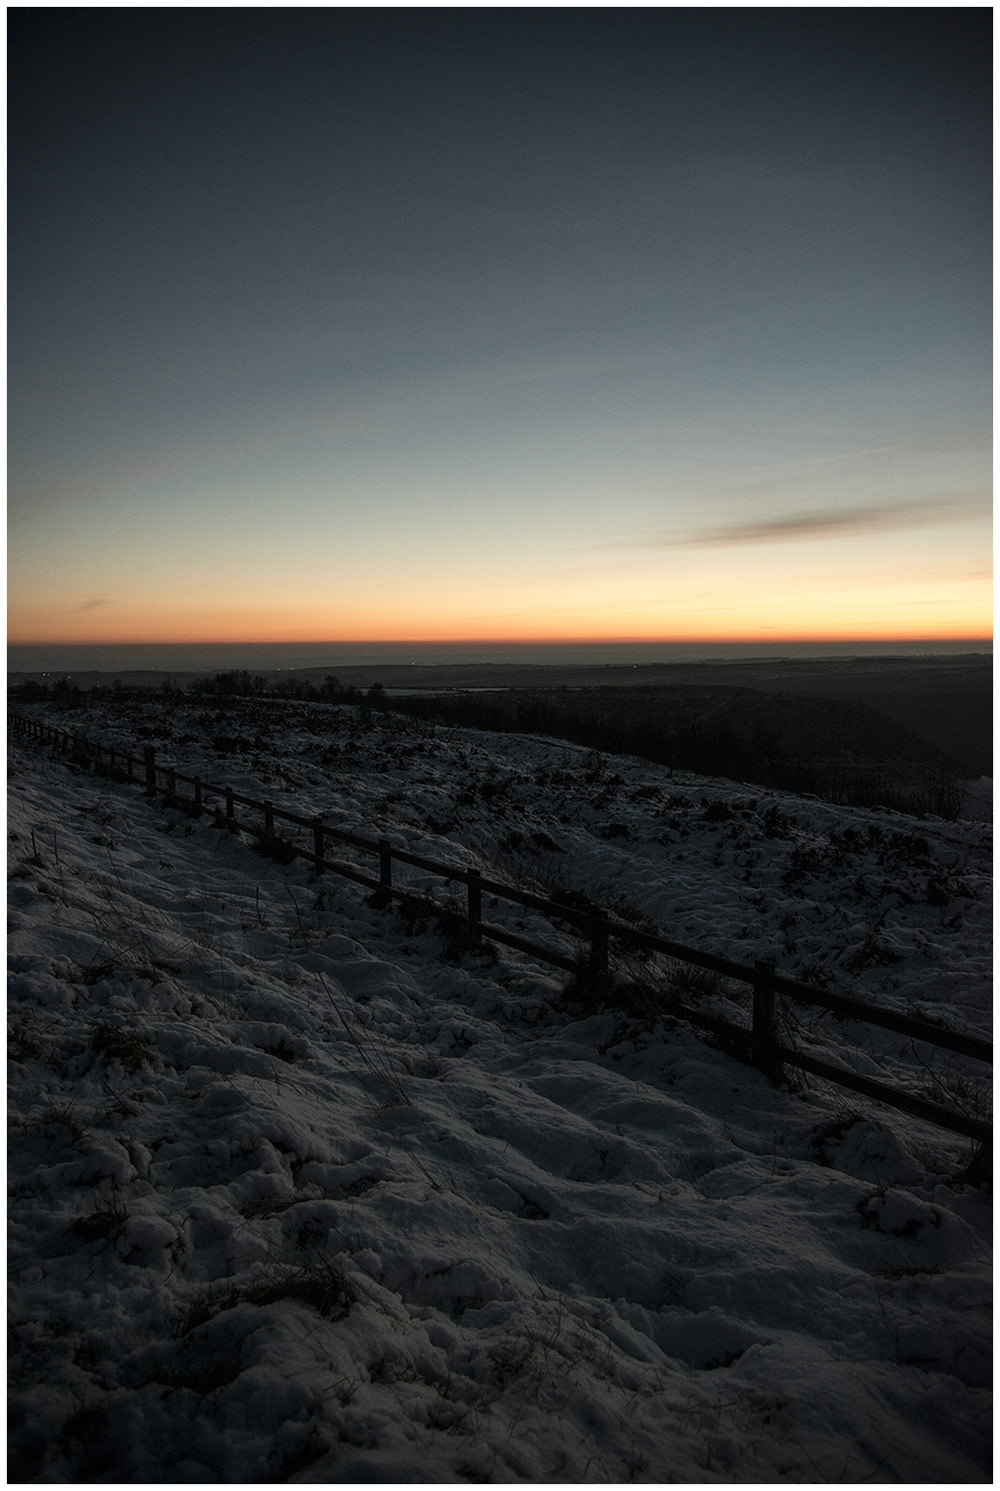 Sunset over the North Yorkshire Moors